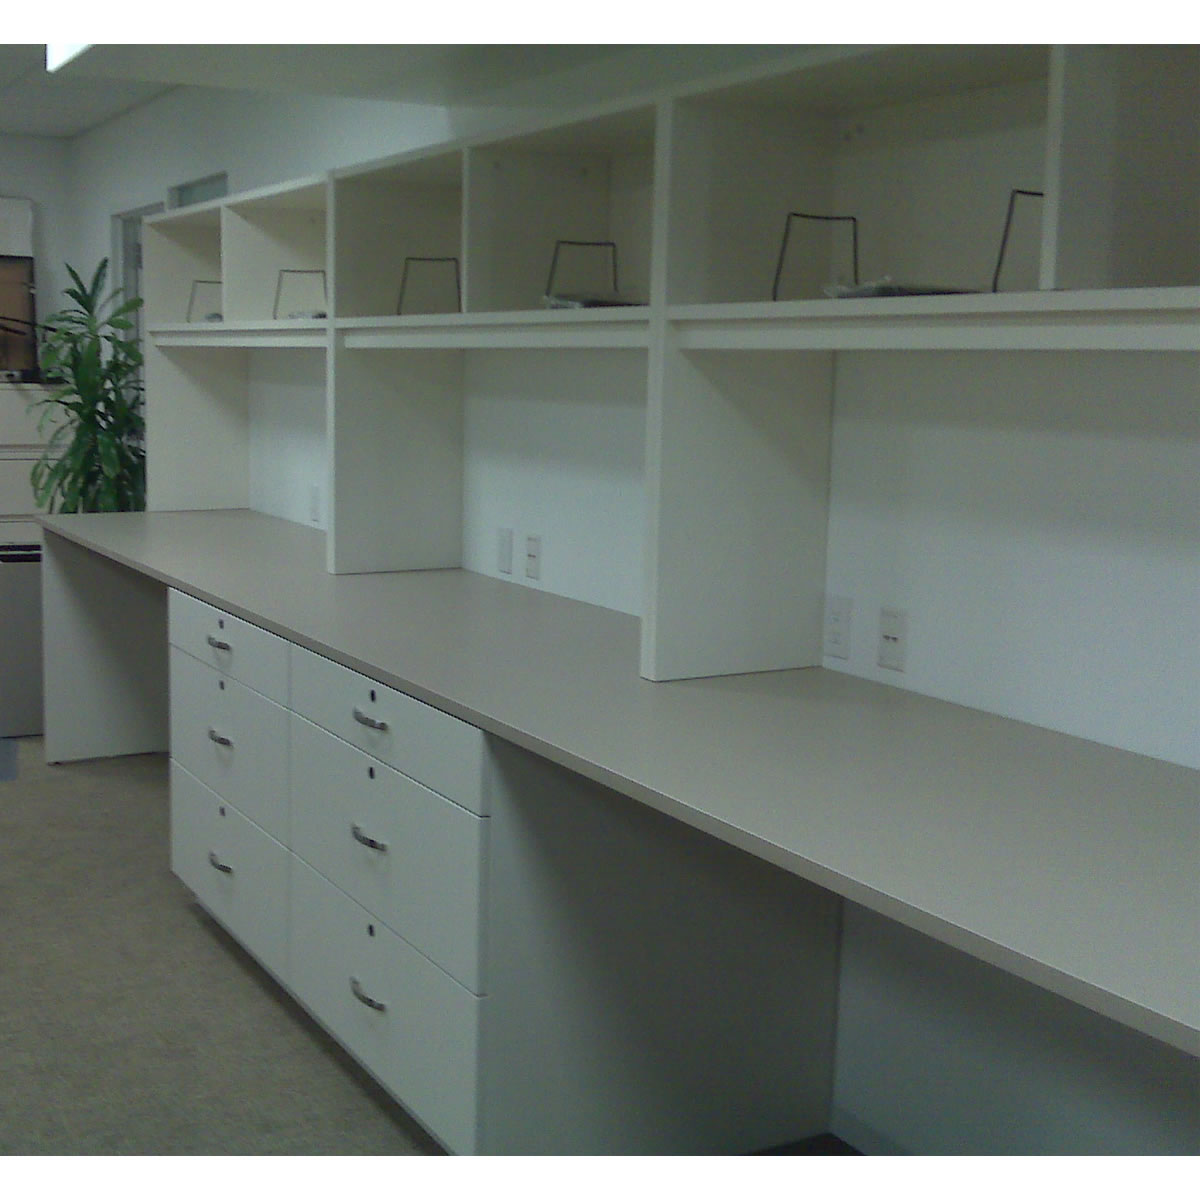 Mailroom Furniture Risers And Base Cabinets